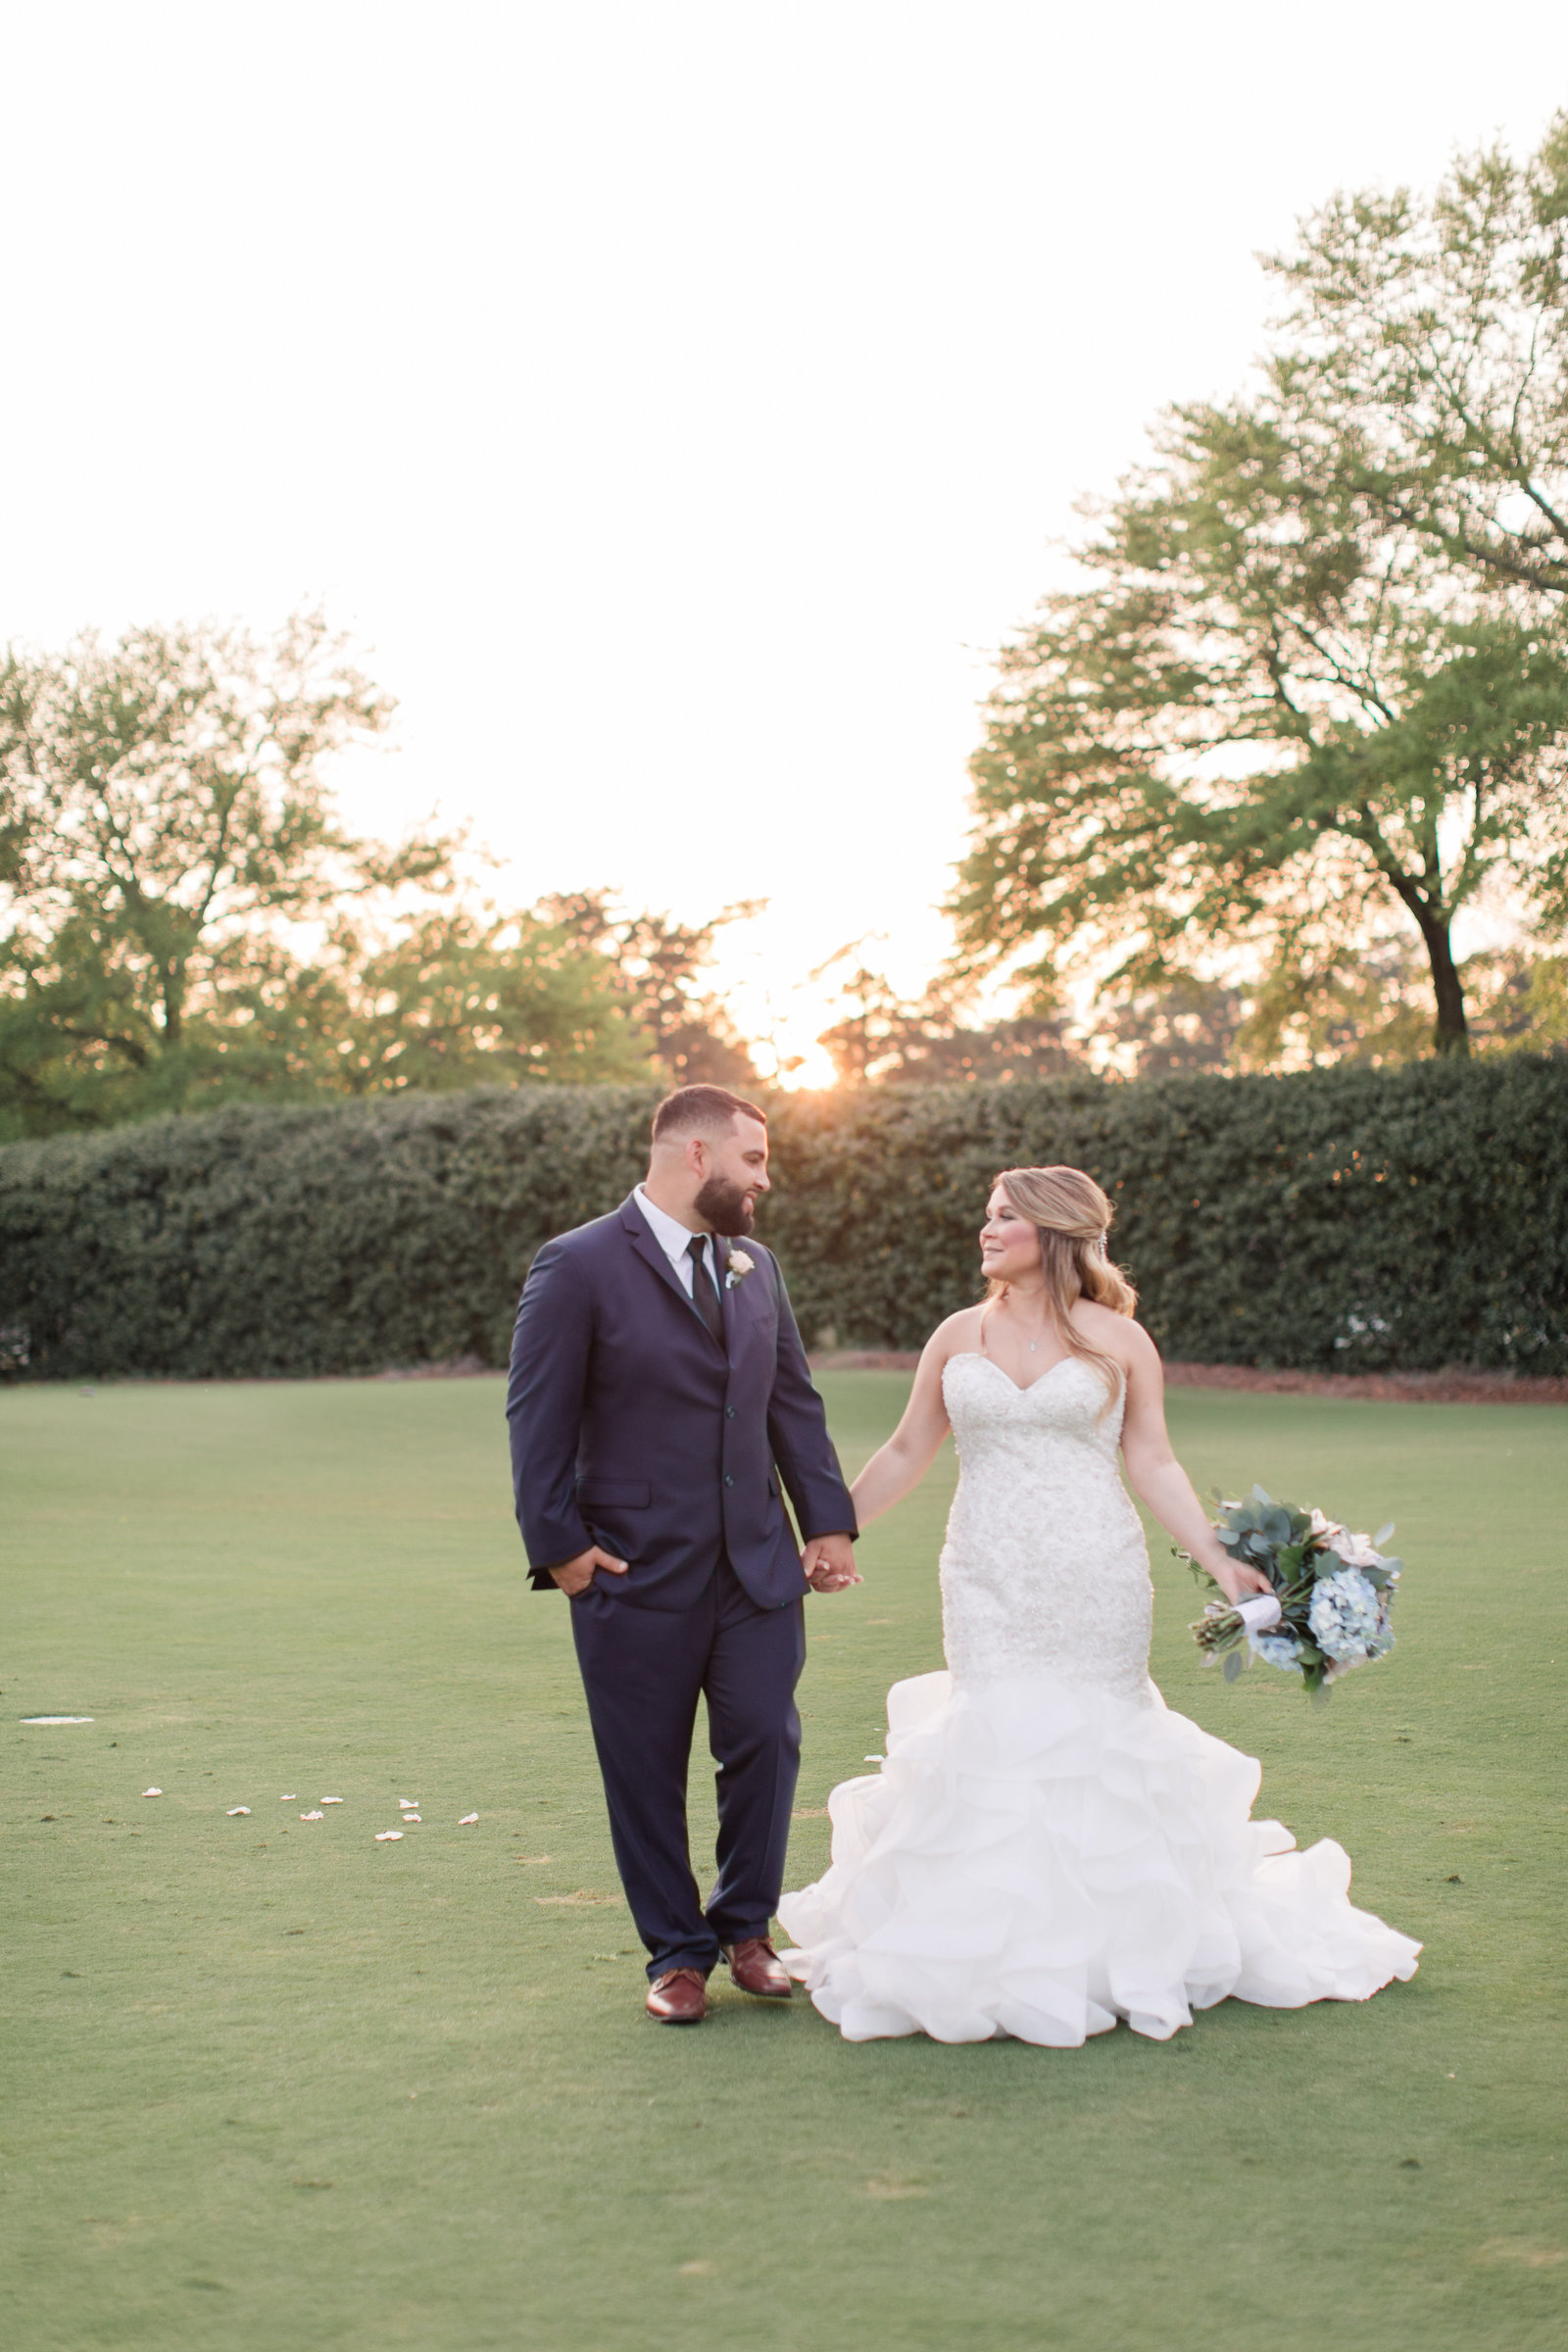 Jennifer_B_Photography-Pinehurst_Club-Pinehurst_NC-Wedding_Day-Caleb___Miranda-JB_Favs-2019-0226